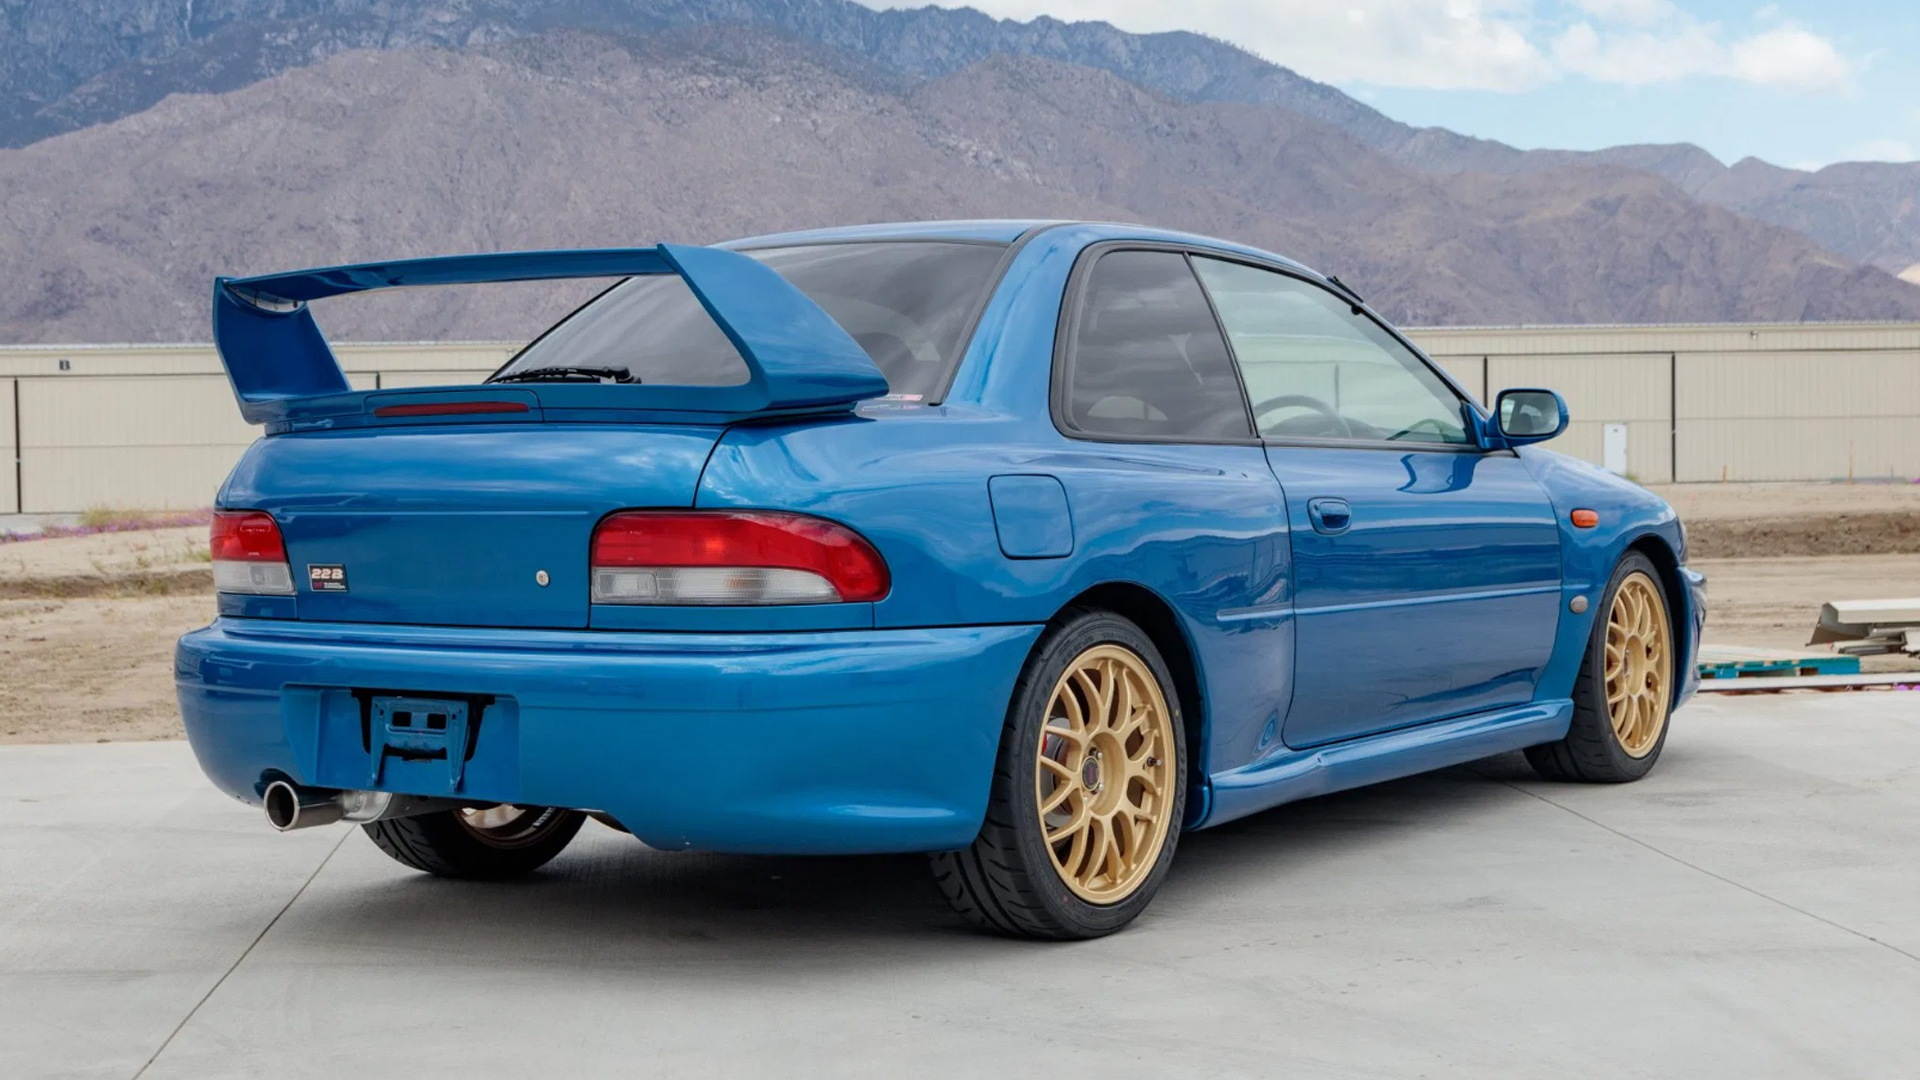 1998 Subaru Impreza 22B STI - Photo credit: Bring A Trailer